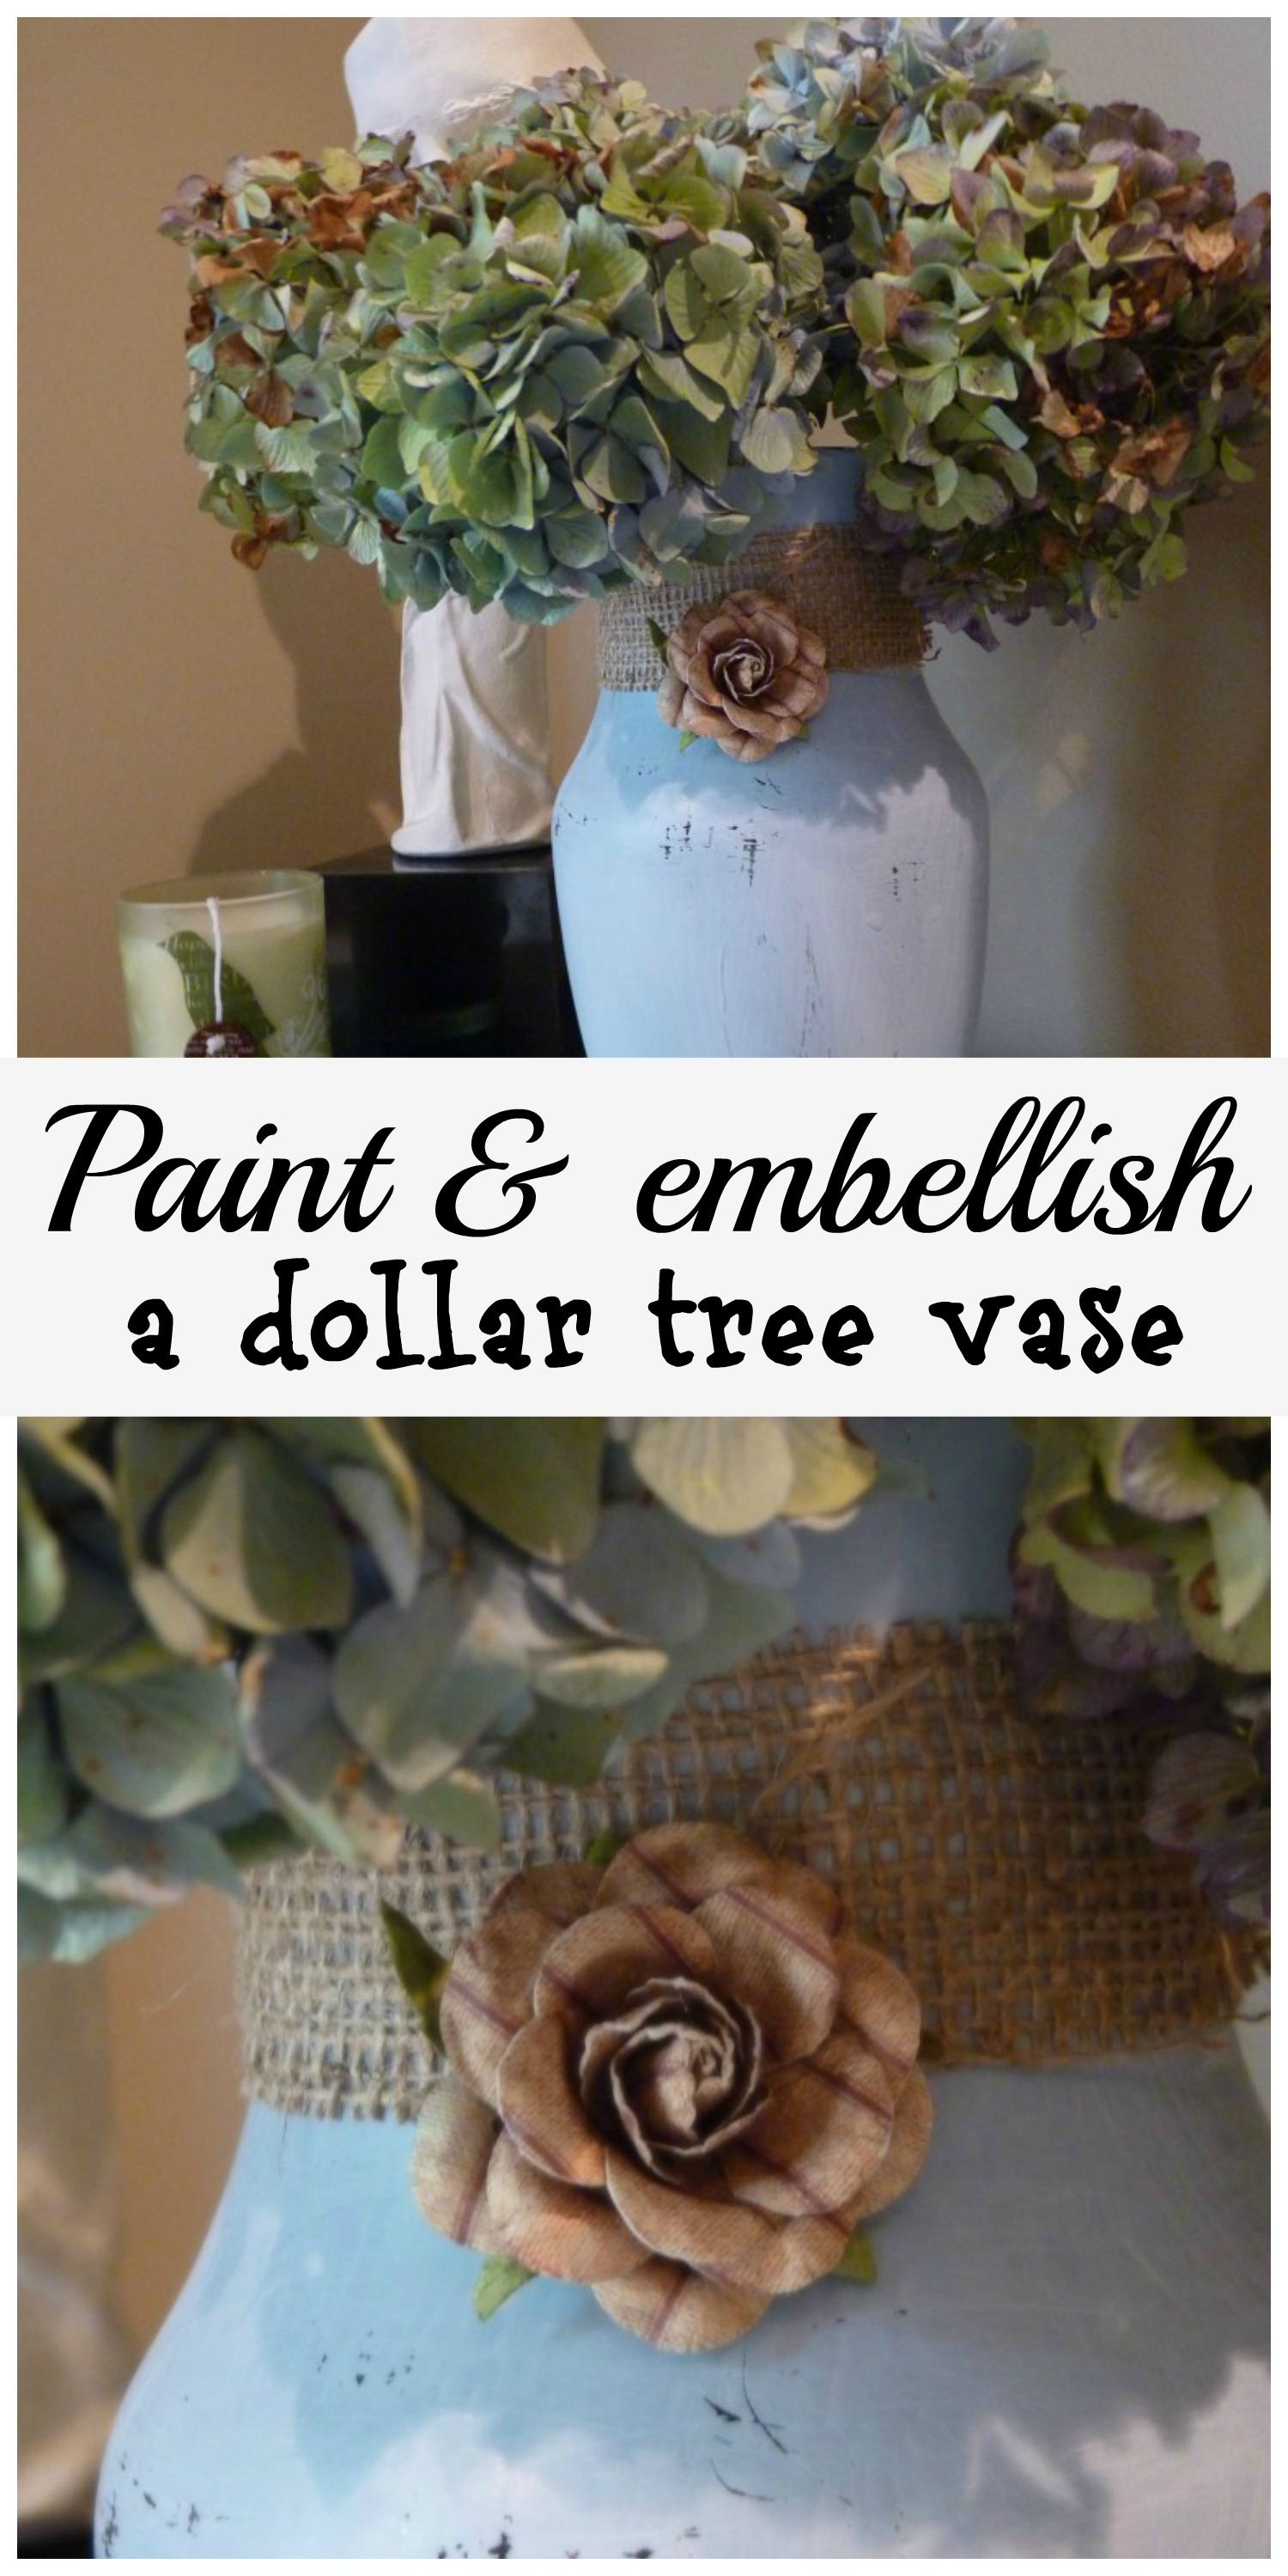 Painted vase from dollar tree, embellished with burlap